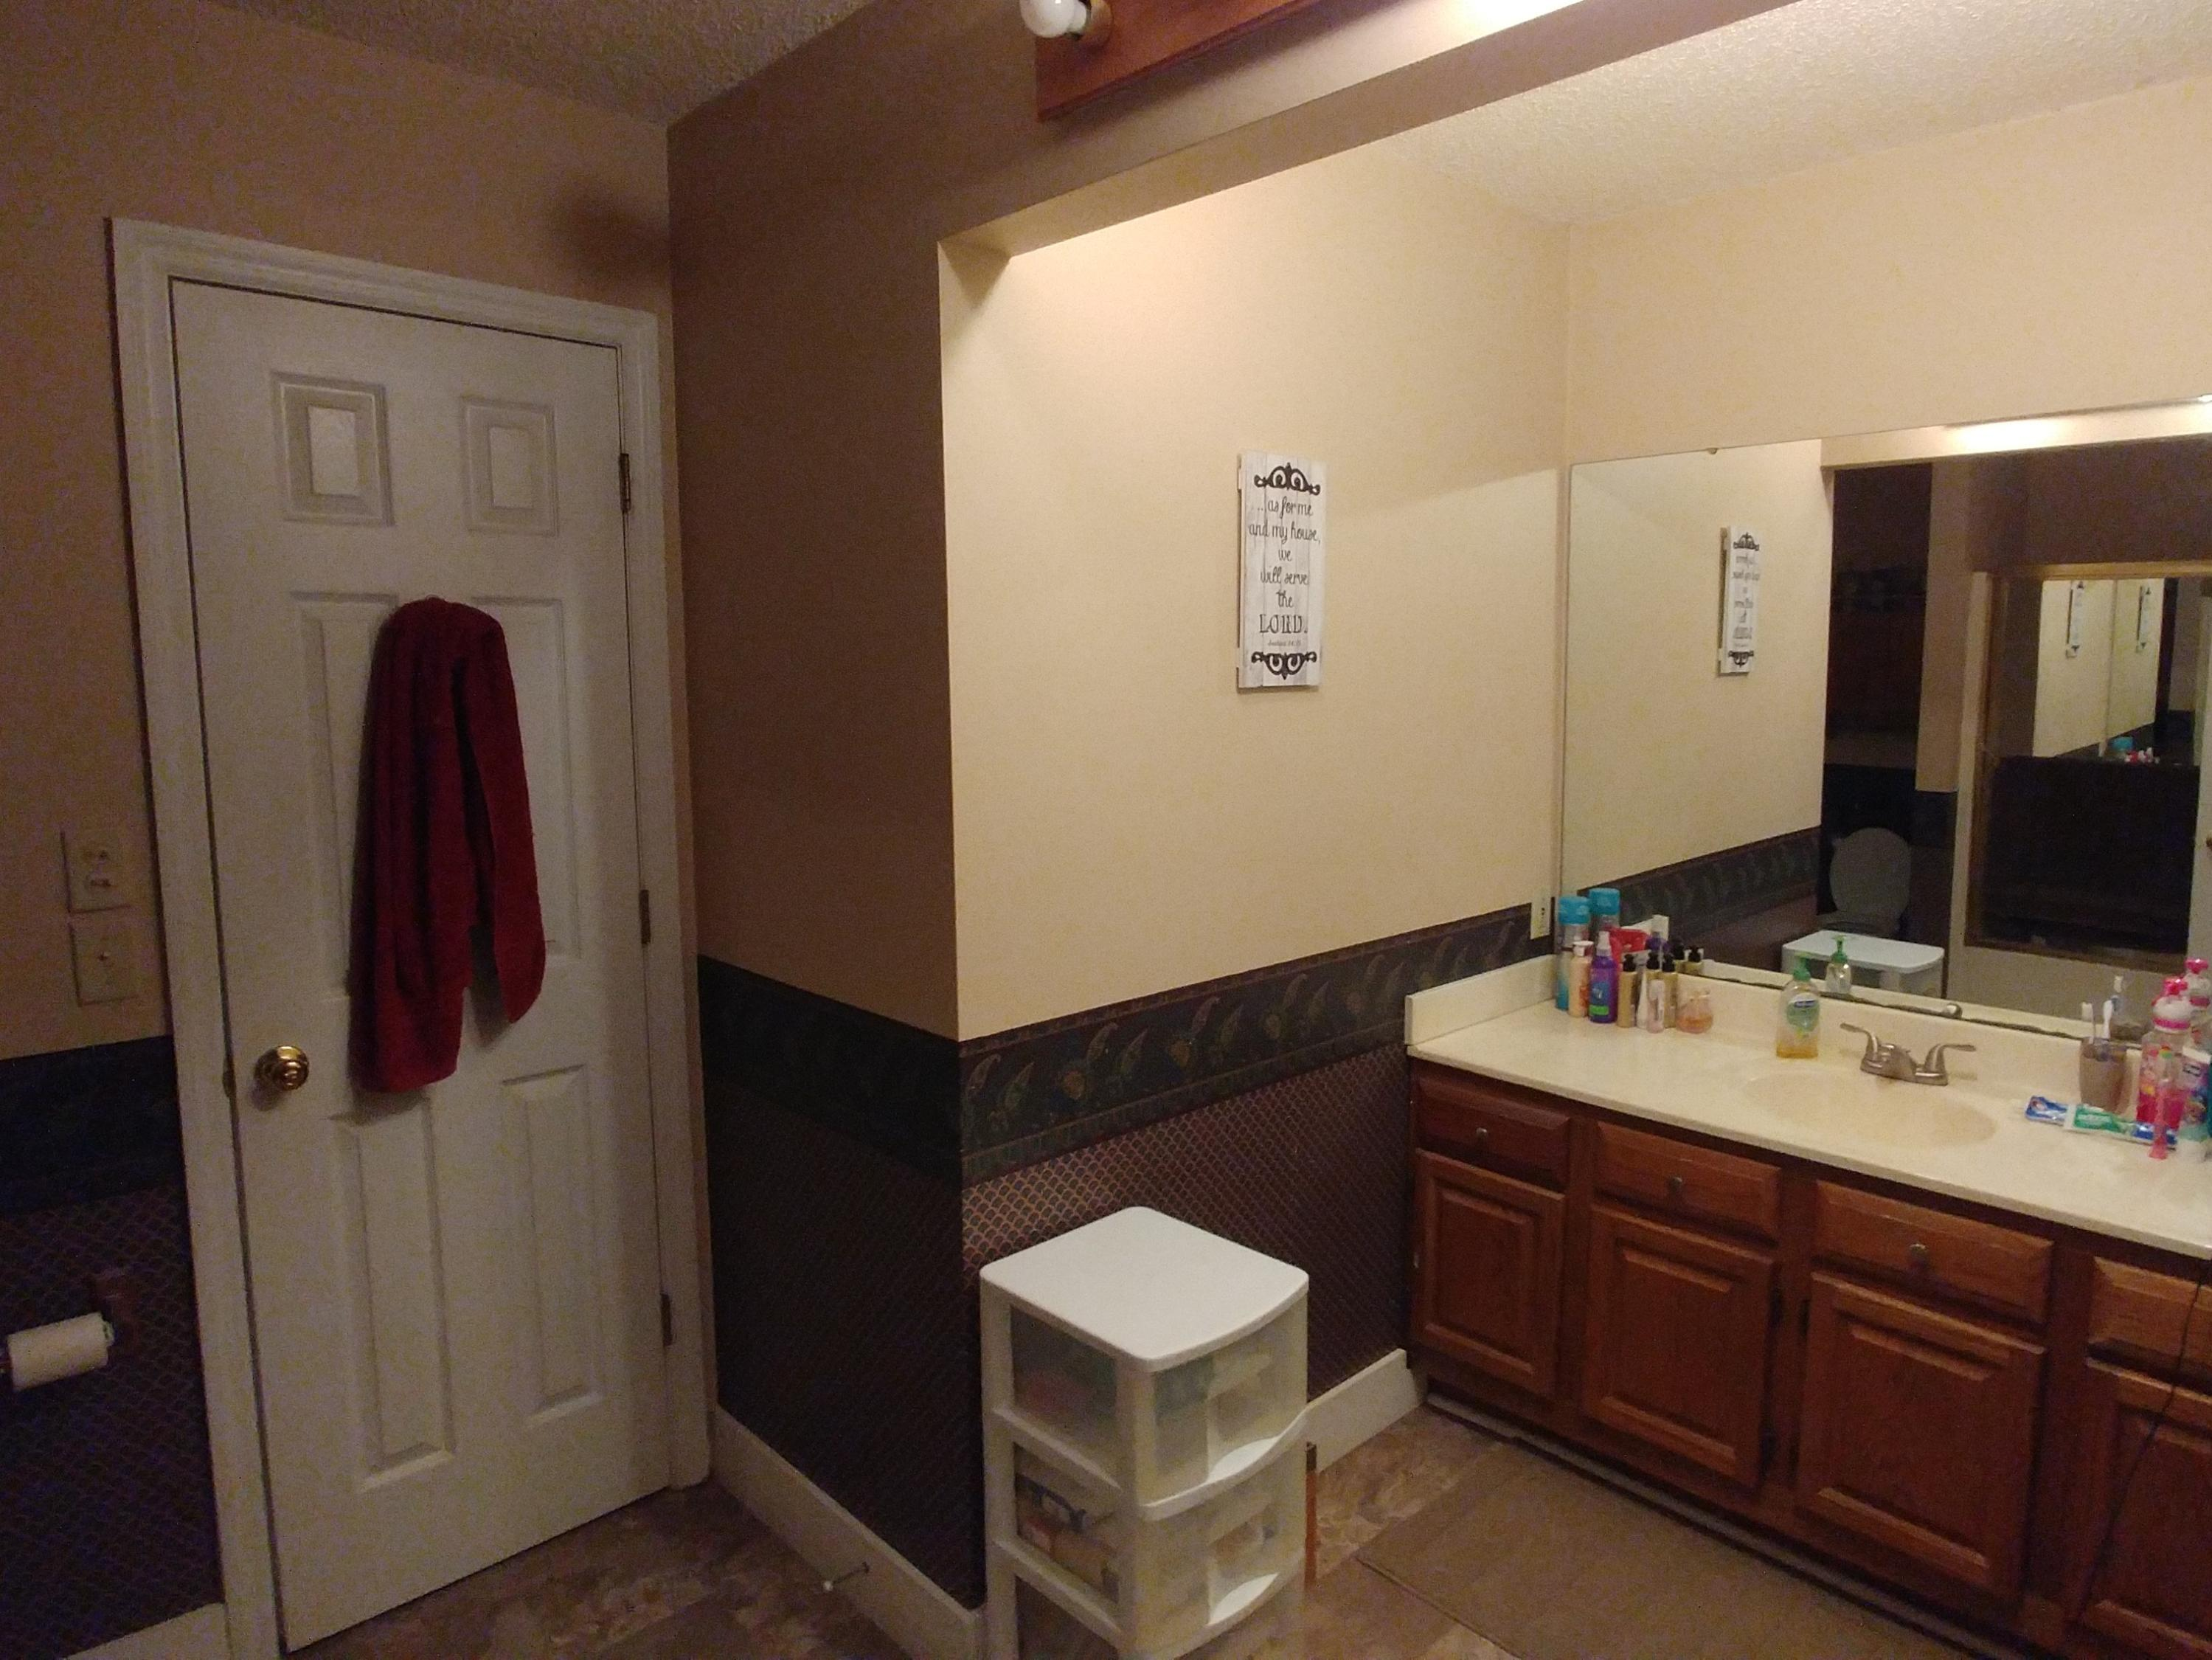 215 John J Duncan, Athens, Tennessee, United States 37303, 2 Bedrooms Bedrooms, ,1 BathroomBathrooms,Single Family,For Sale,John J Duncan,1058807